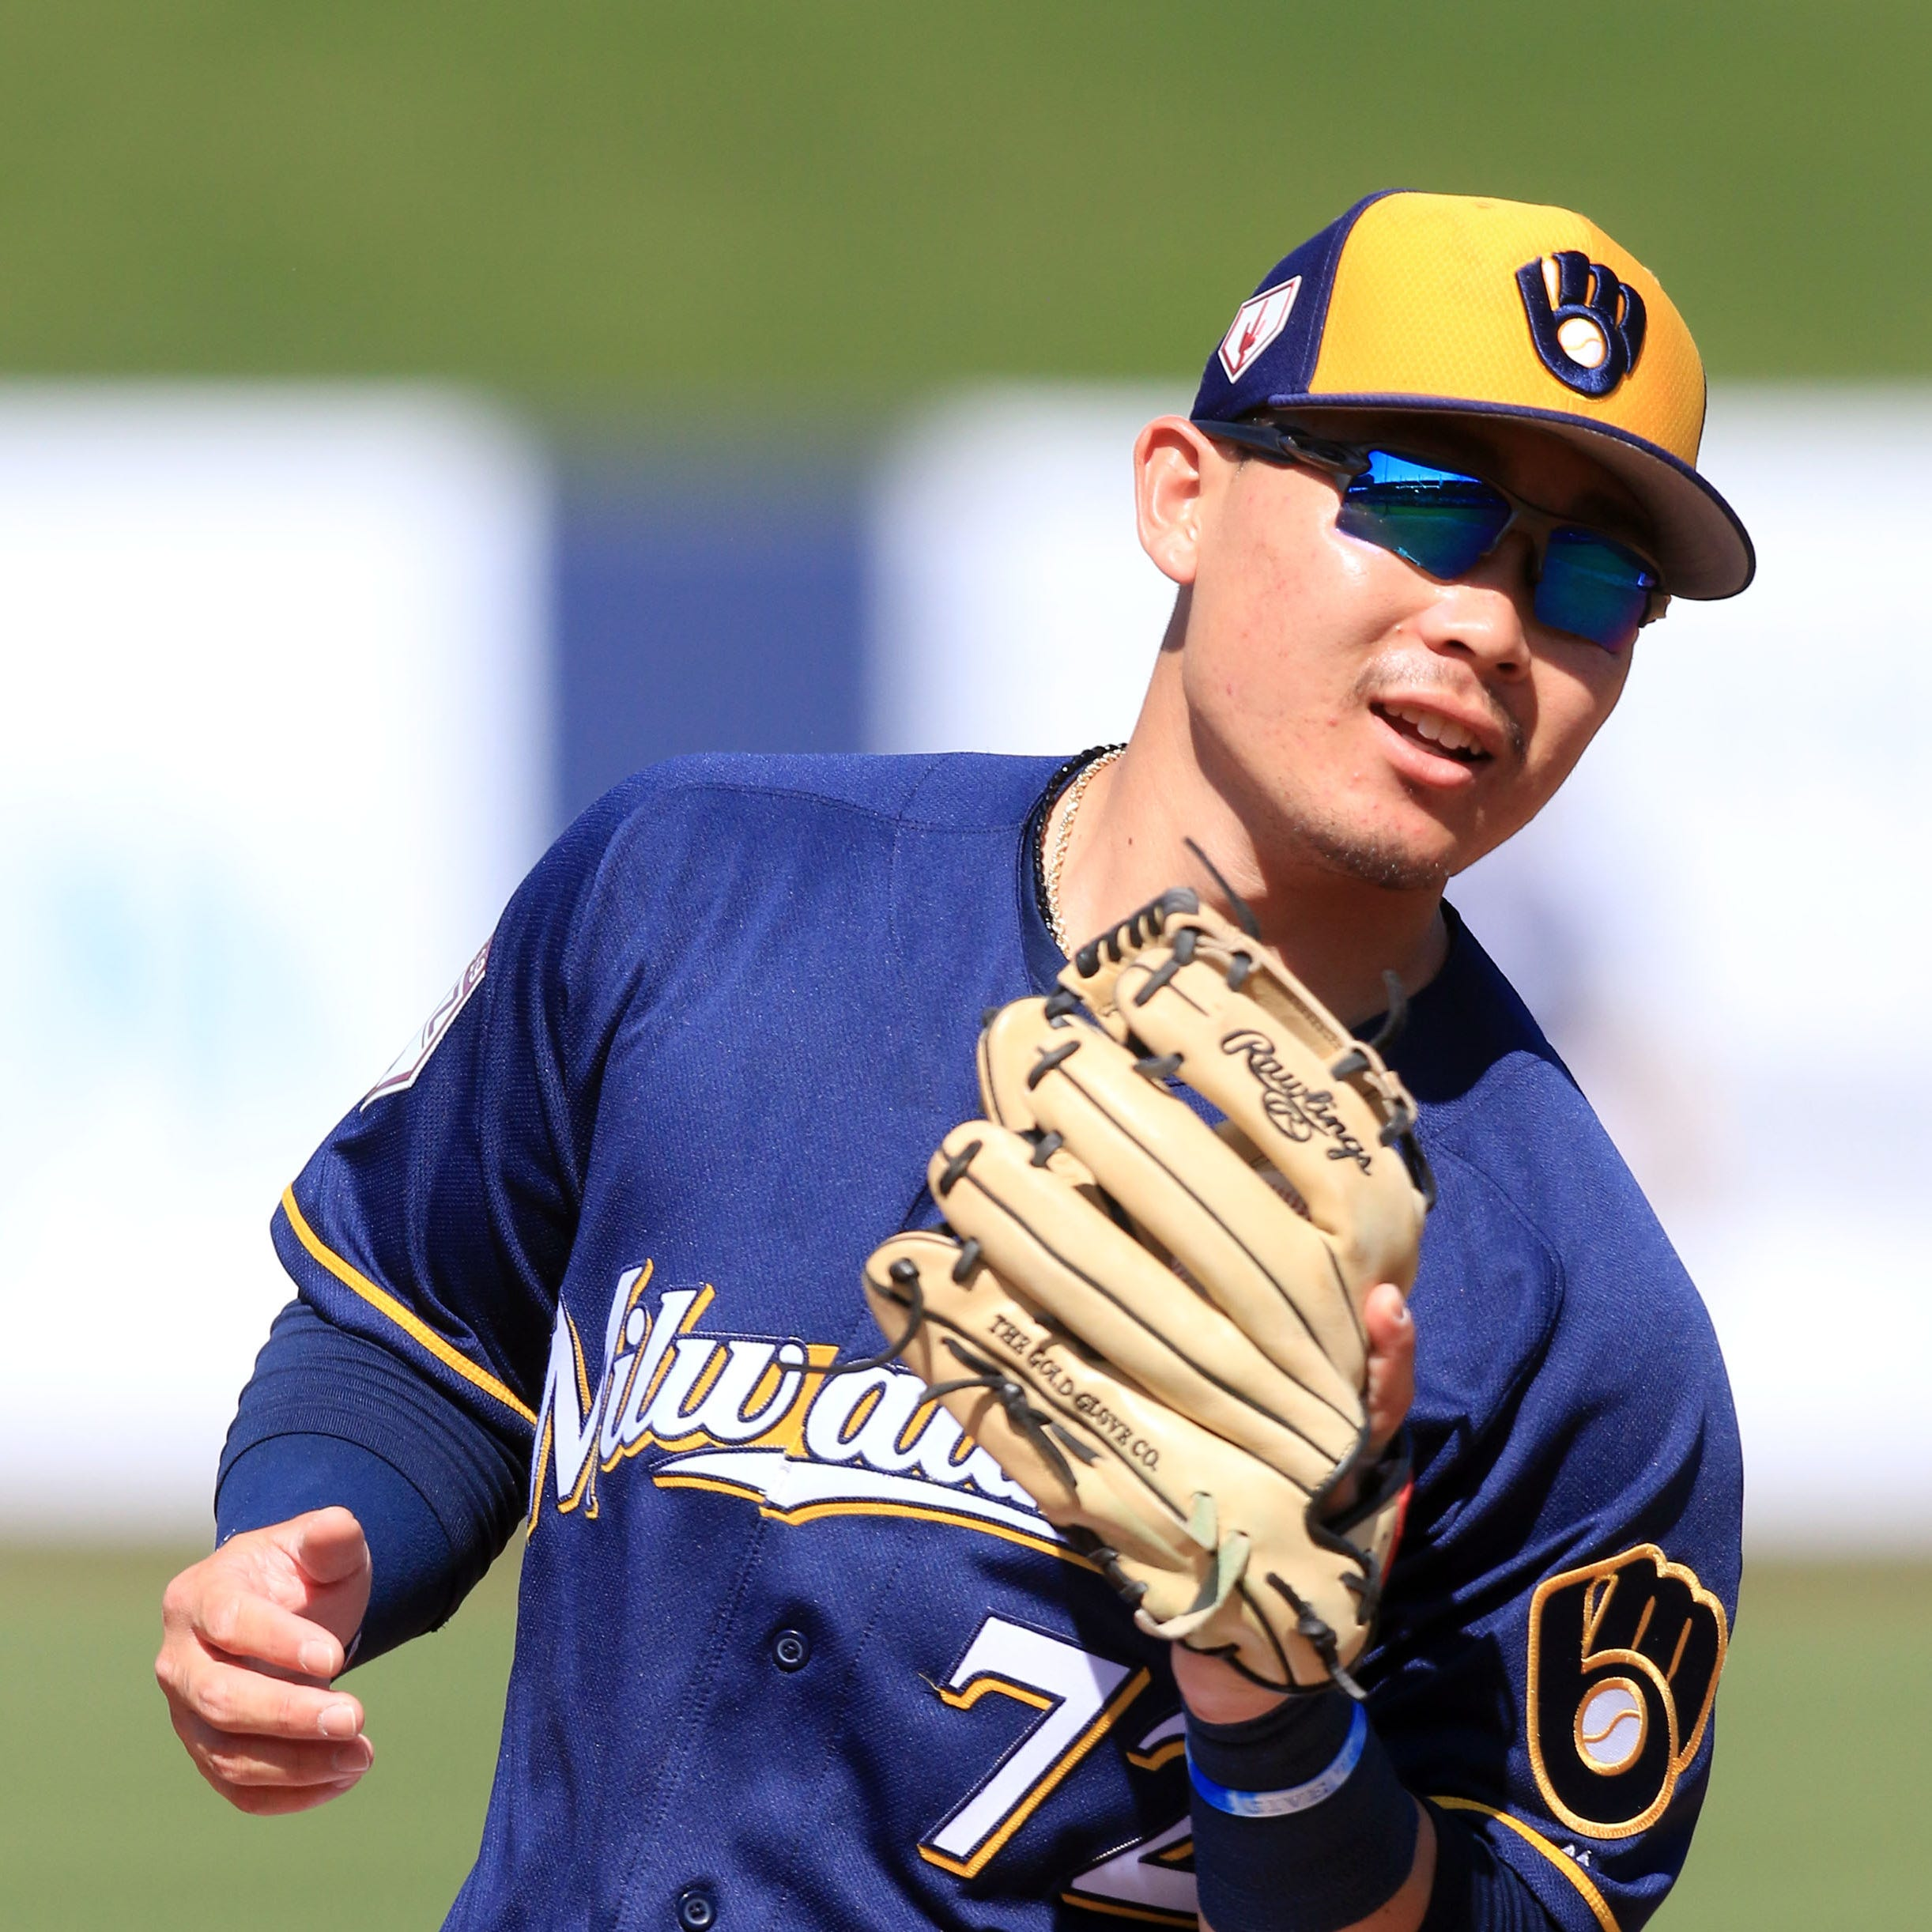 Brewers call up top prospect Keston Hiura, place Travis Shaw on injured list with wrist strain